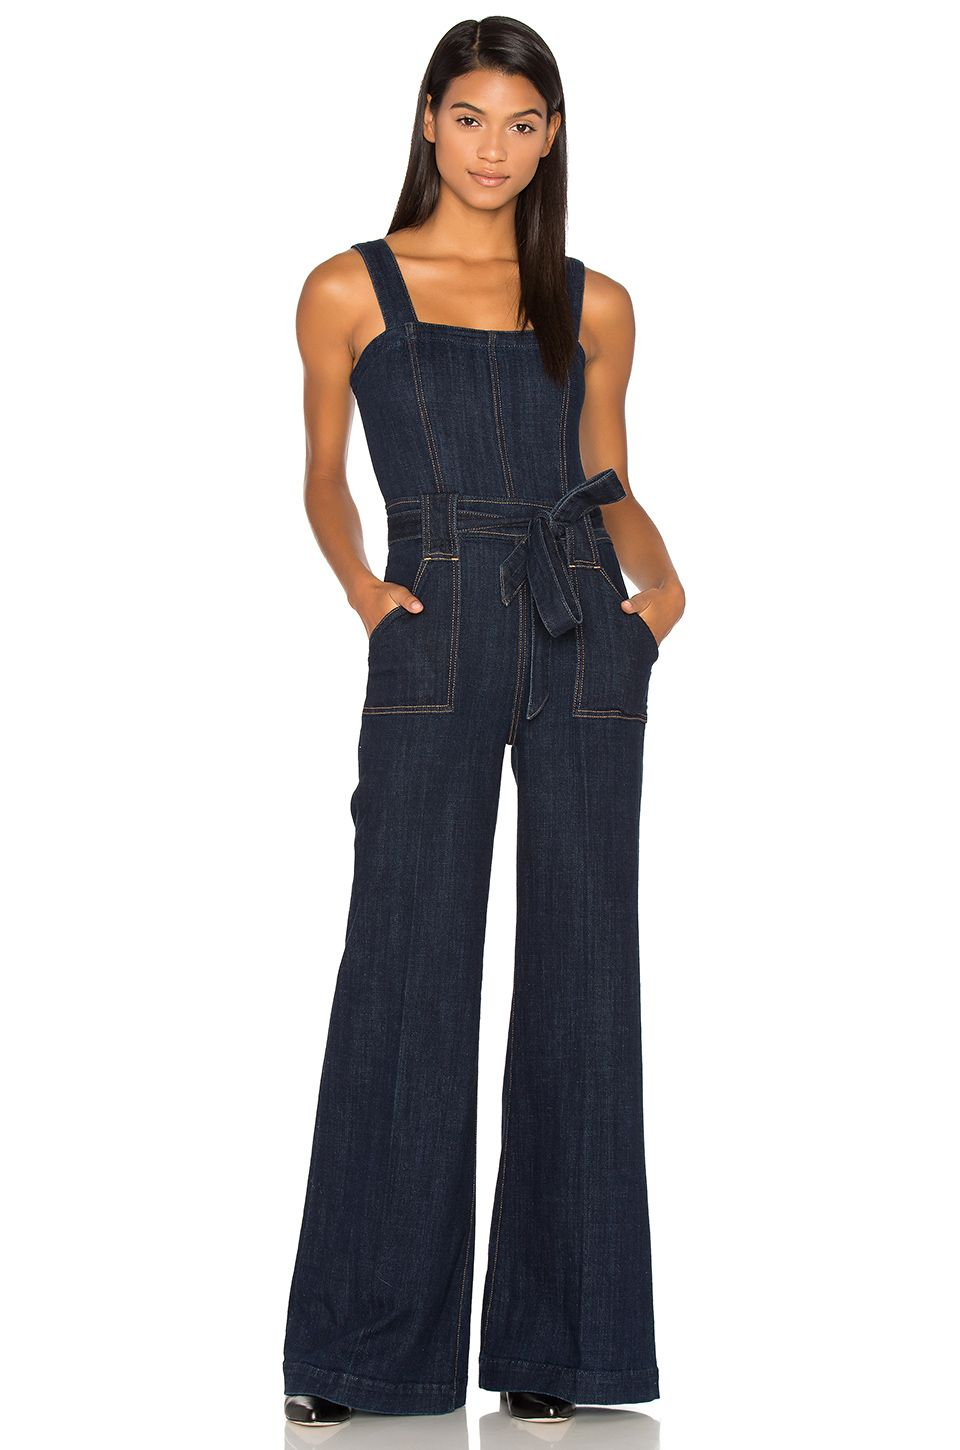 7 For All Mankind Palazzo Jumpsuit in Dark Sky Broken Twill | REVOLVE